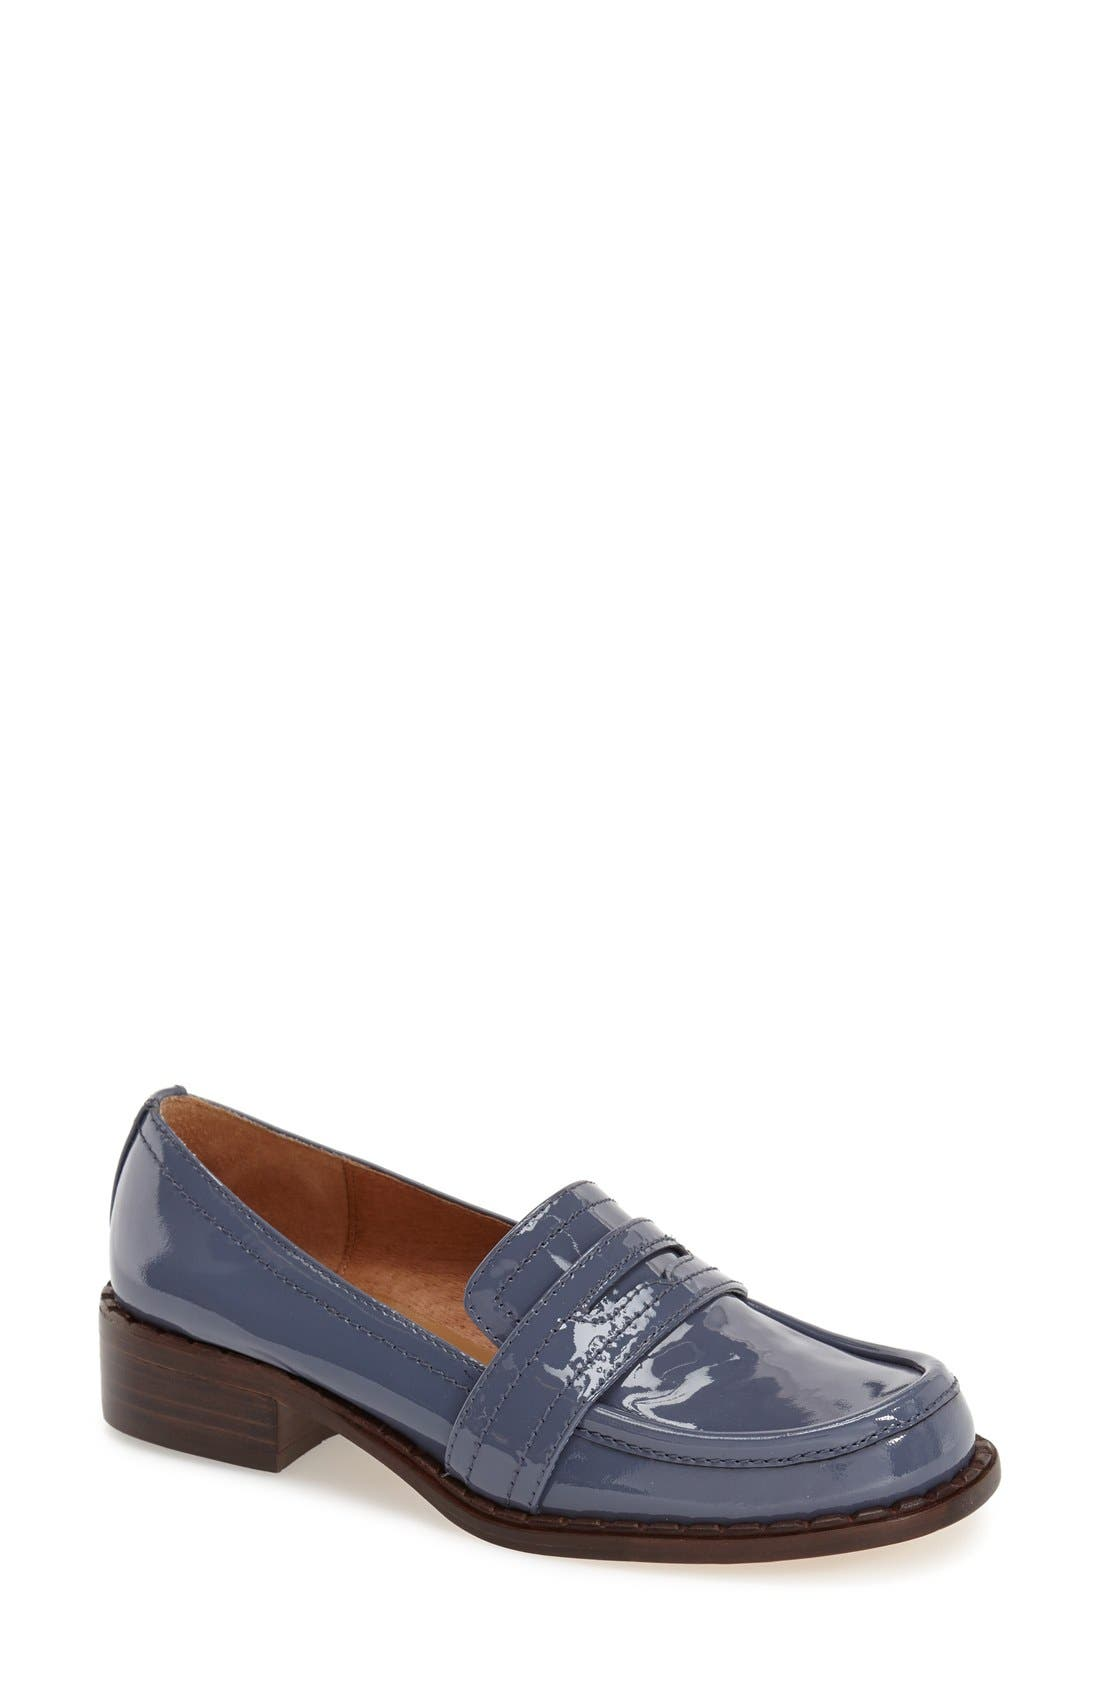 'Mystique' Penny Loafer,                         Main,                         color, 405